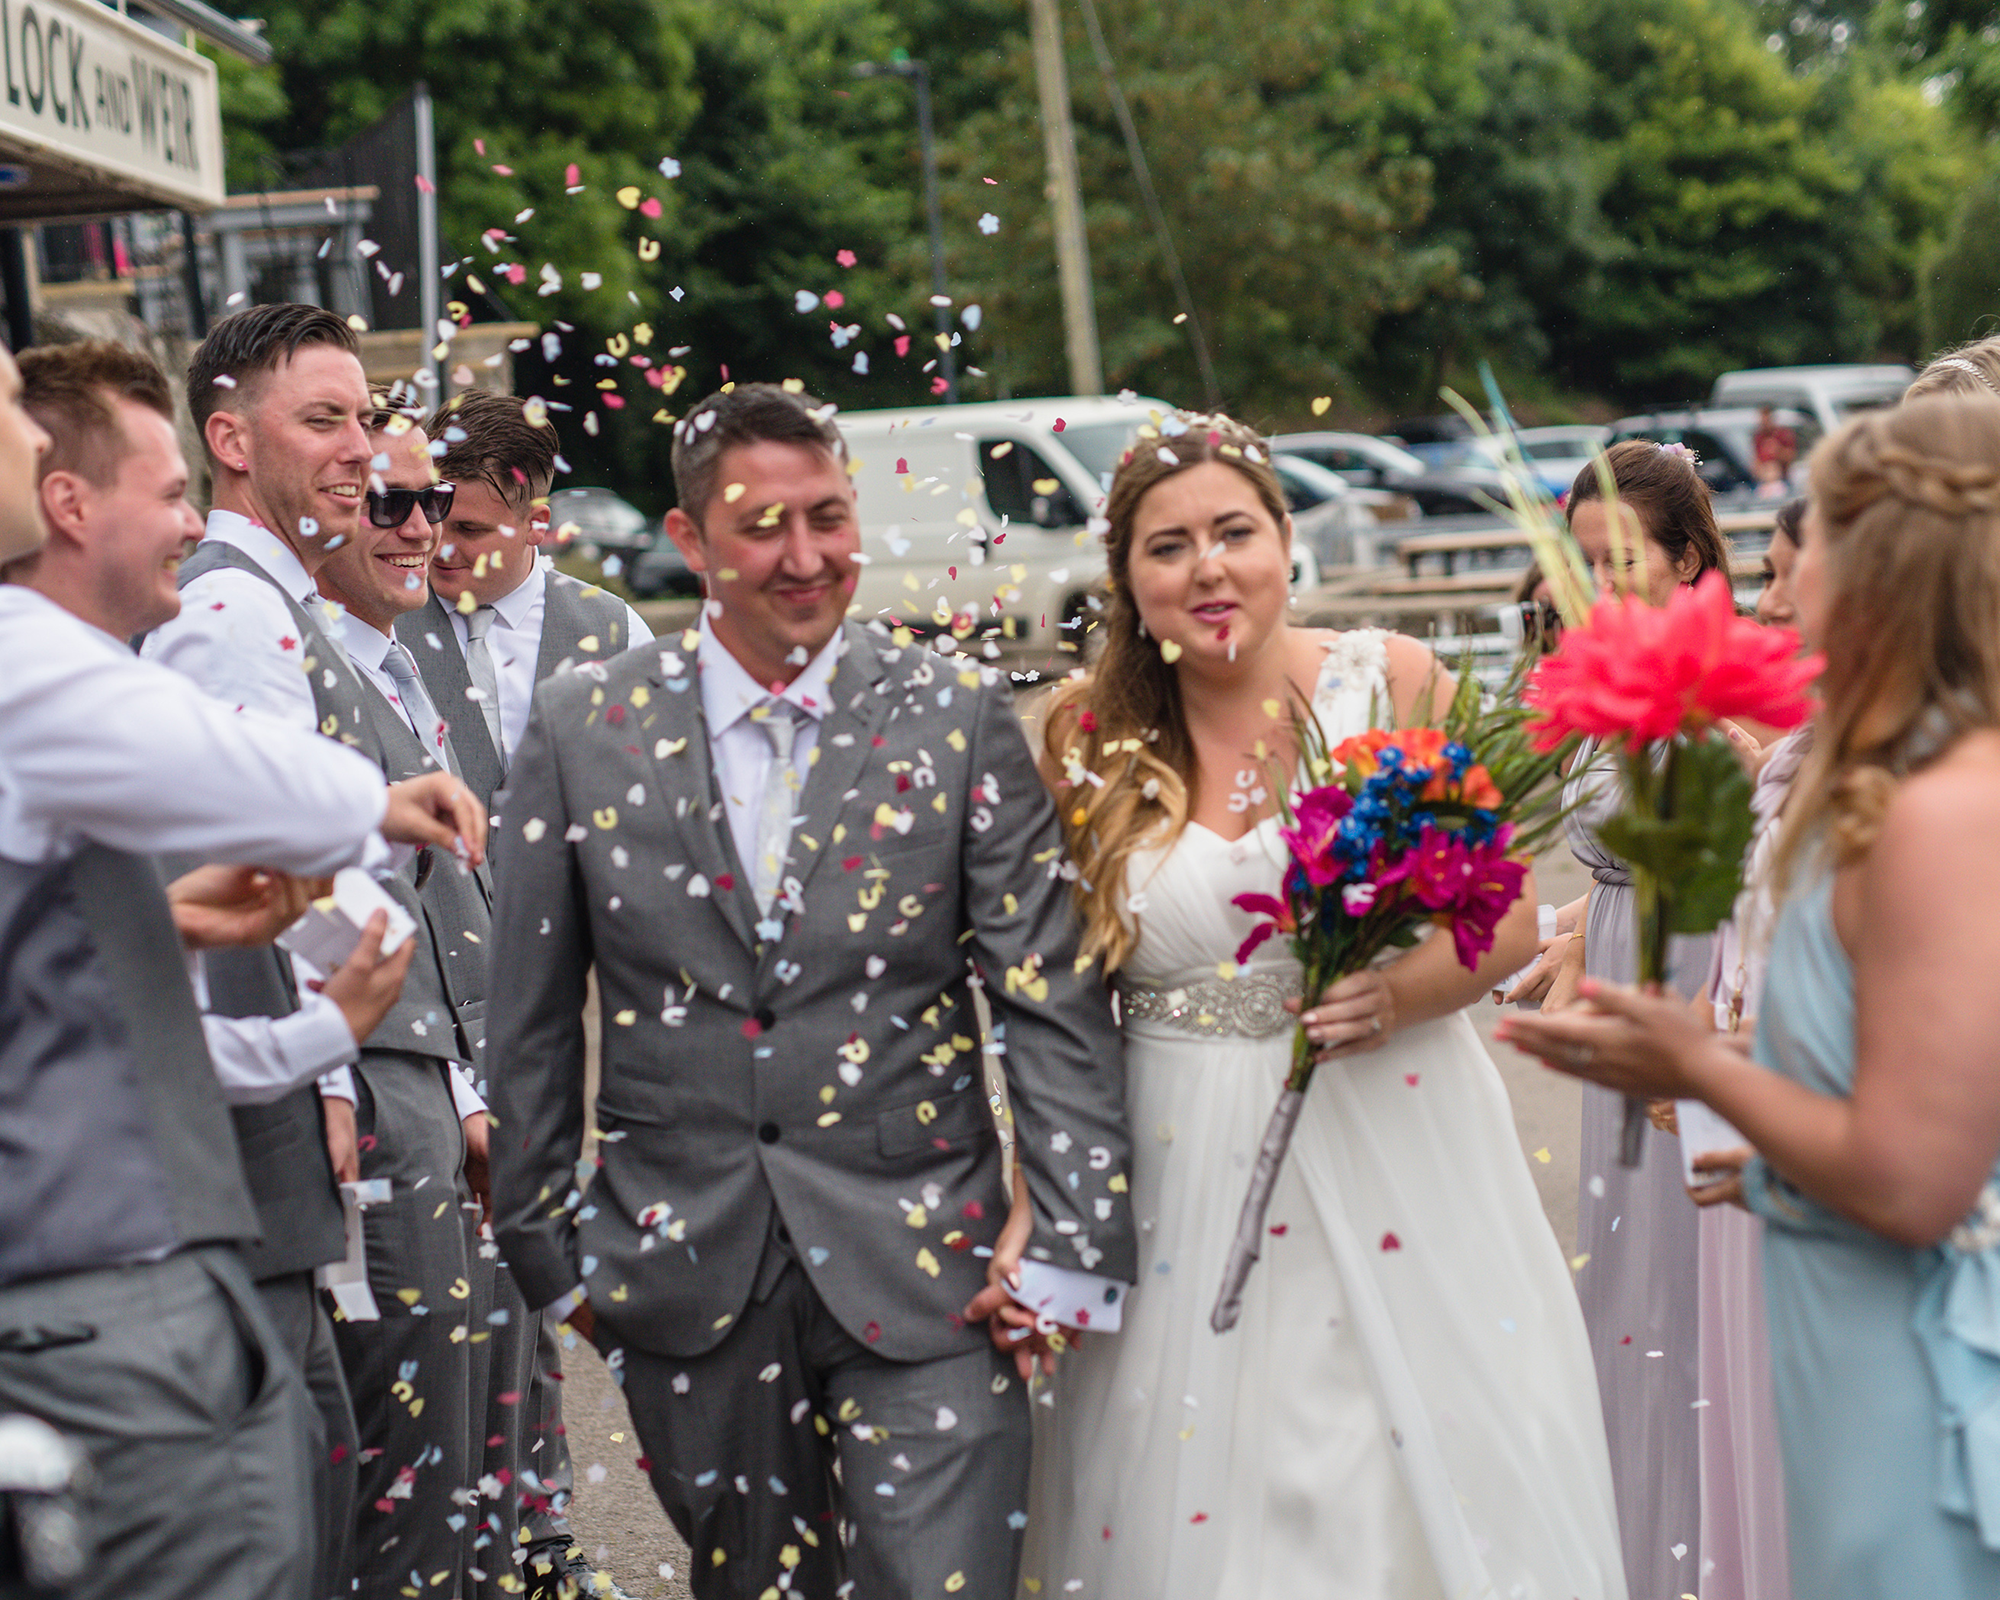 Confetti showers for the new Mr & Mrs at their Bristol UK wedding reception